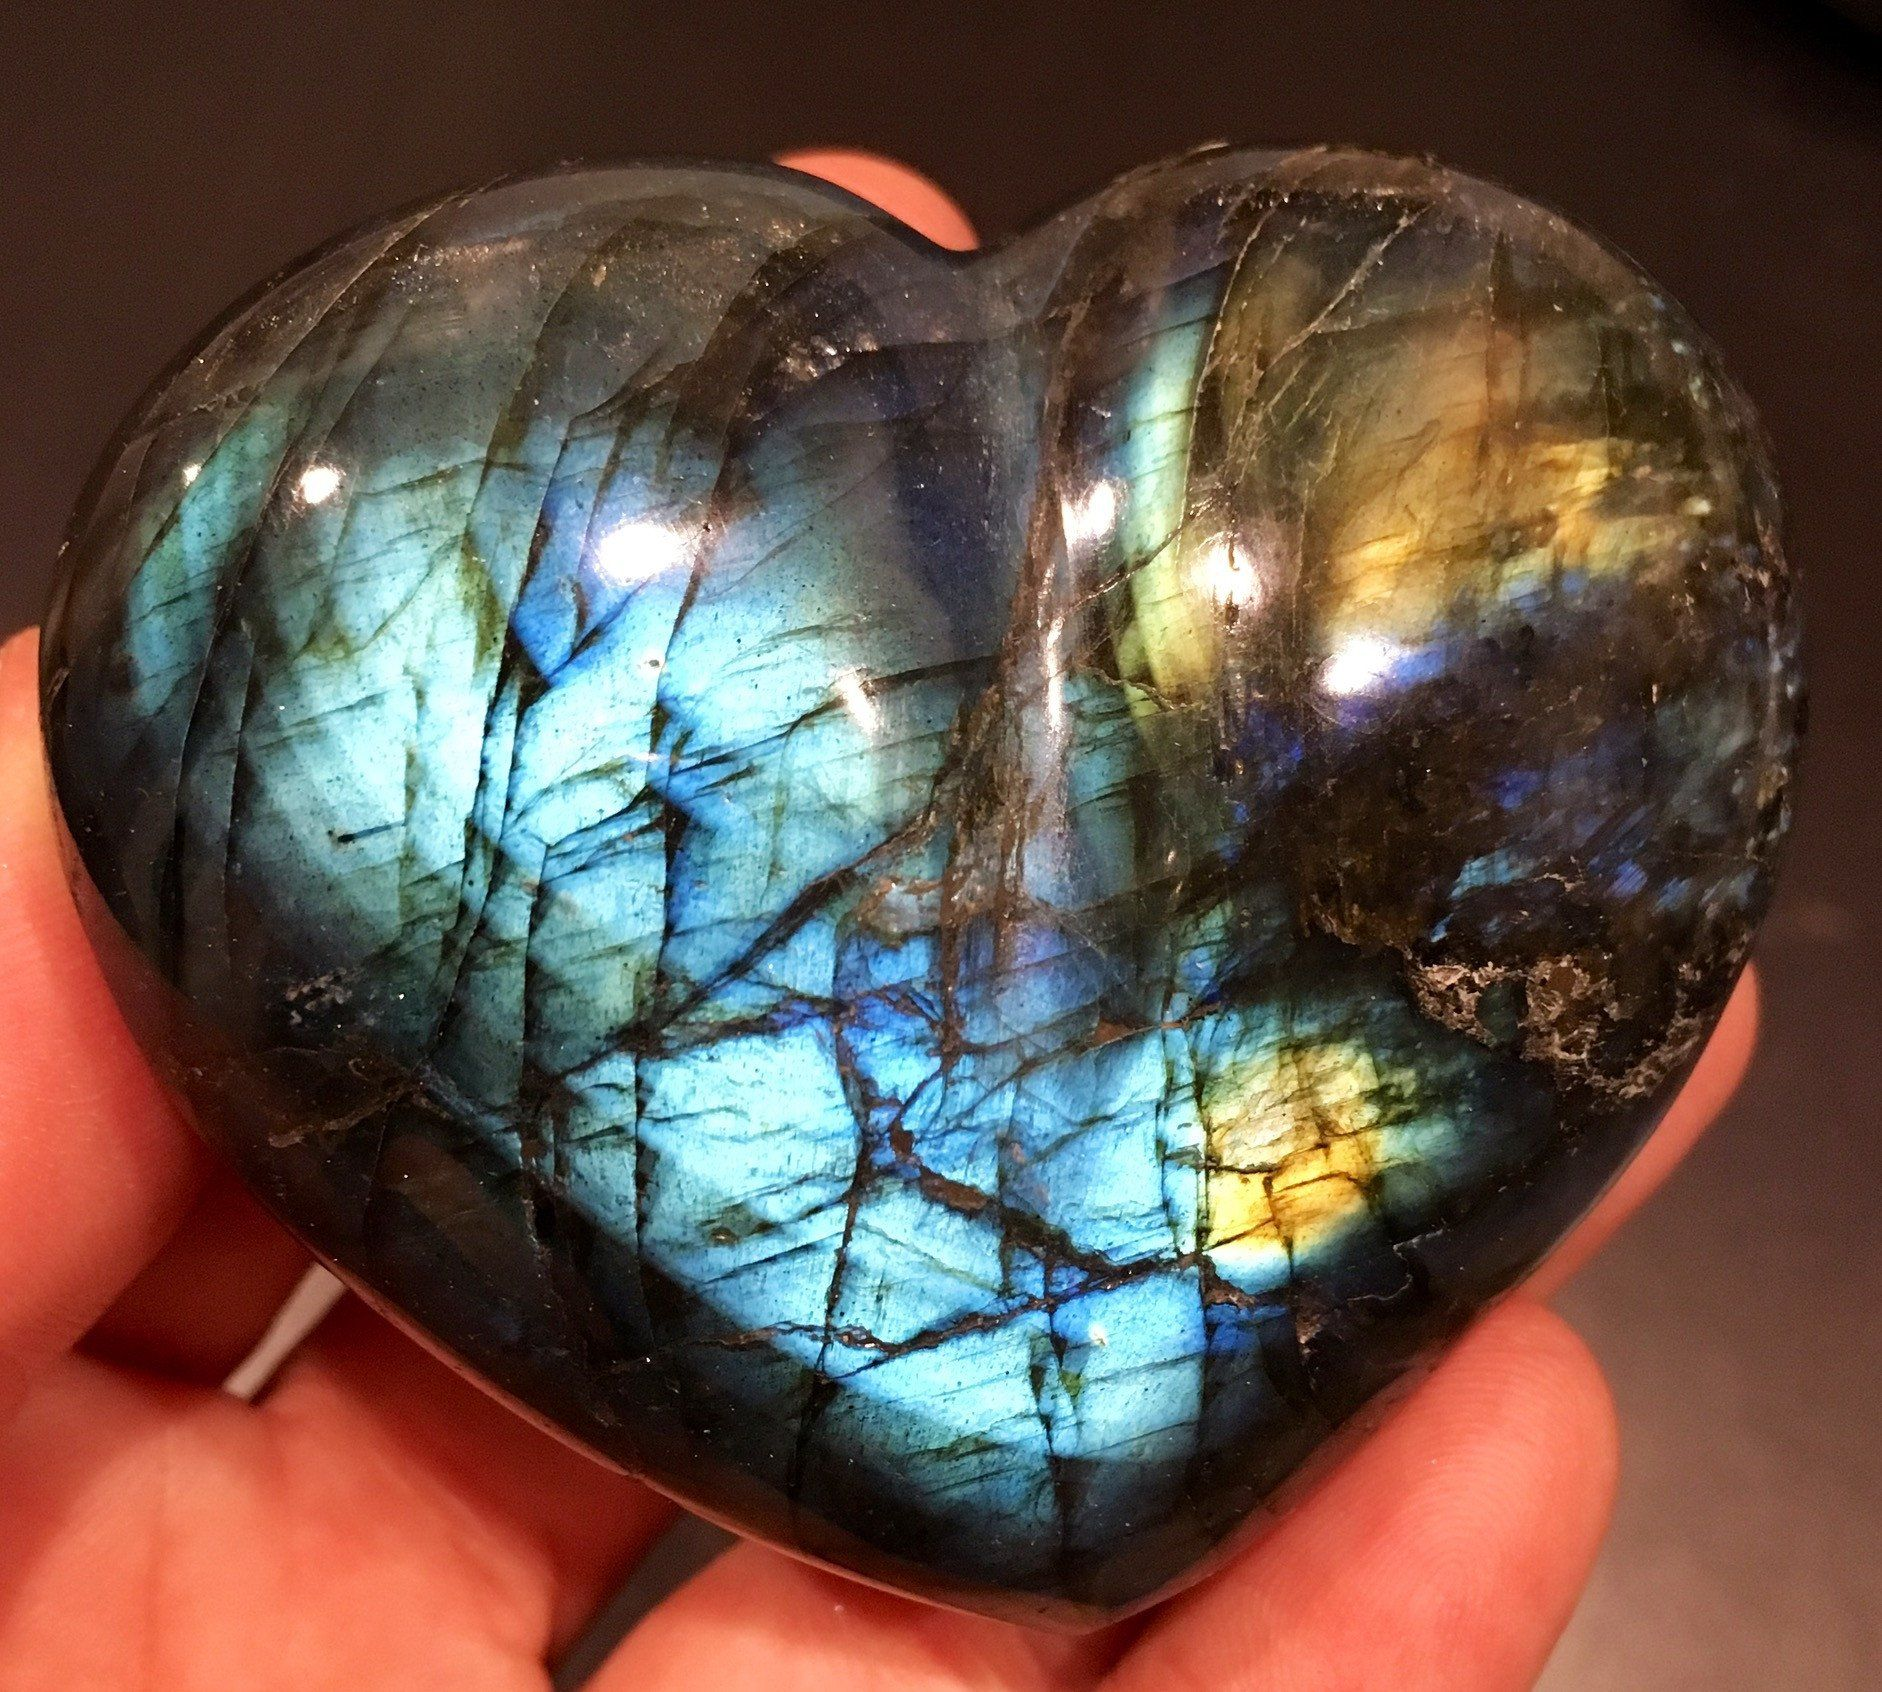 Labradorite Crystal Heartlisting Is For One 1 100 Natural Gemstone Labradorite Polished Stone Due To Th Stone Heart Stones And Crystals Labradorite Stone